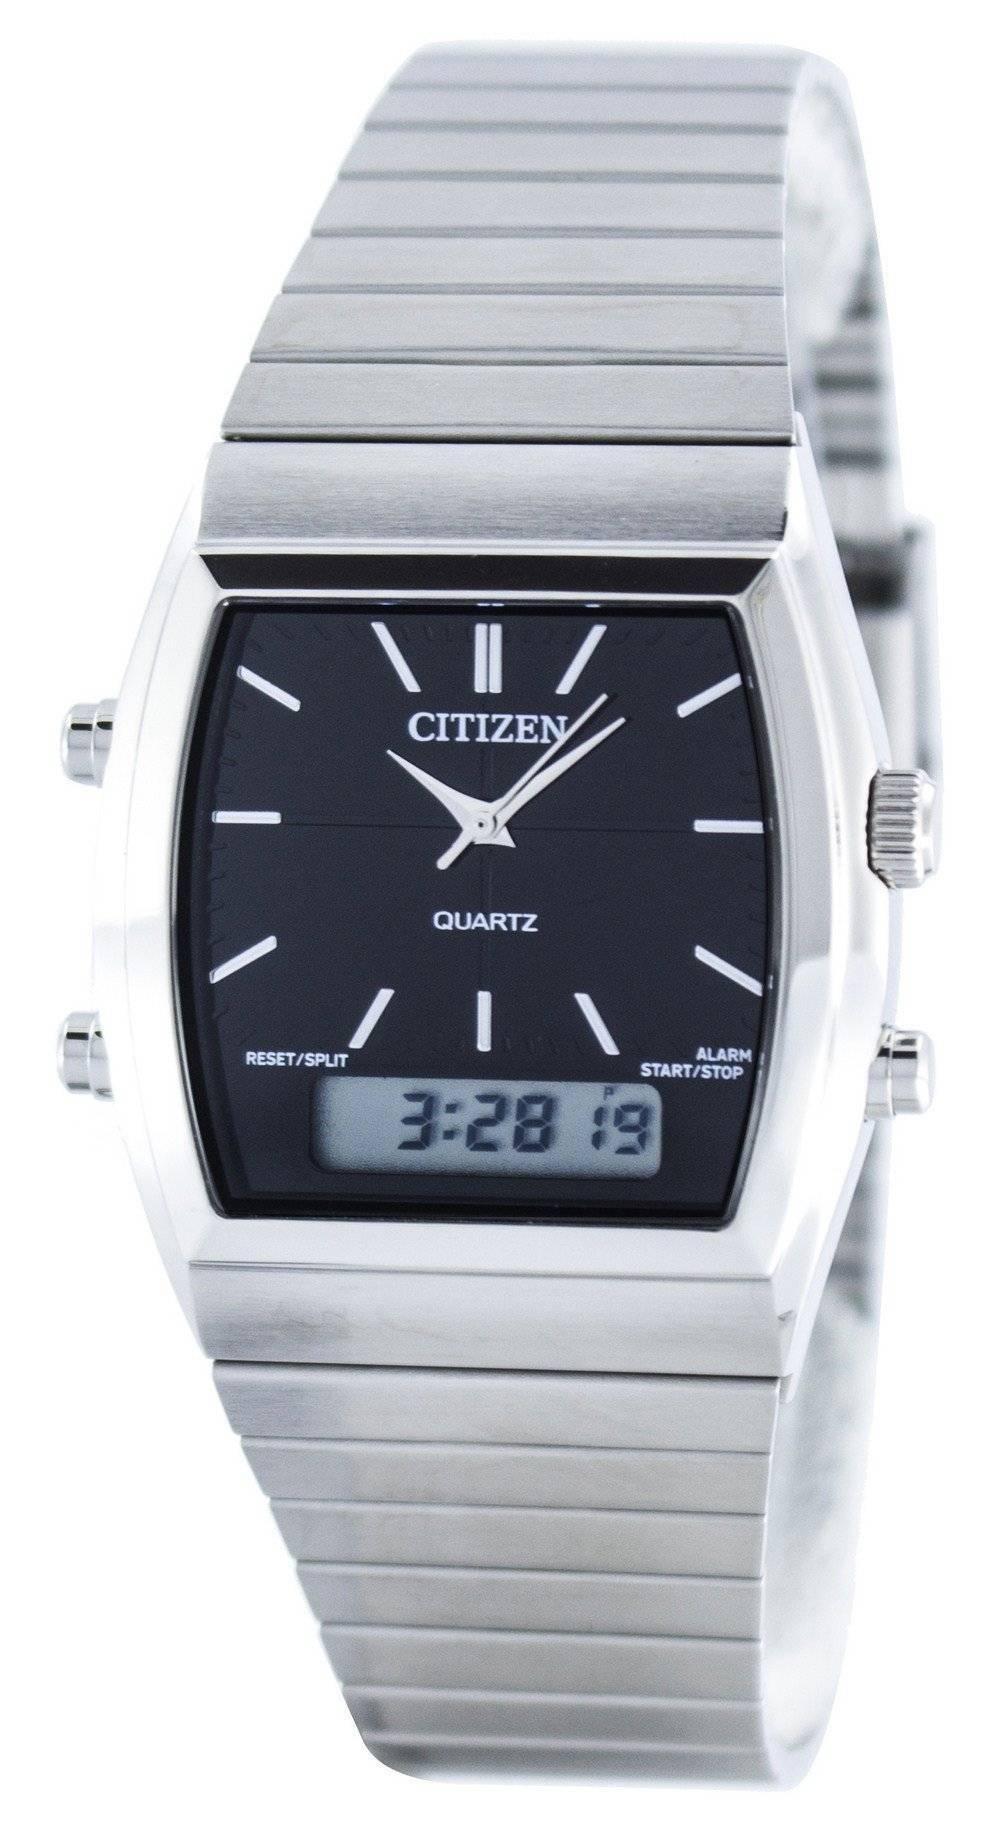 Citizen Quartz Alarm Chronograph Analog Digital JM0540-51E ...